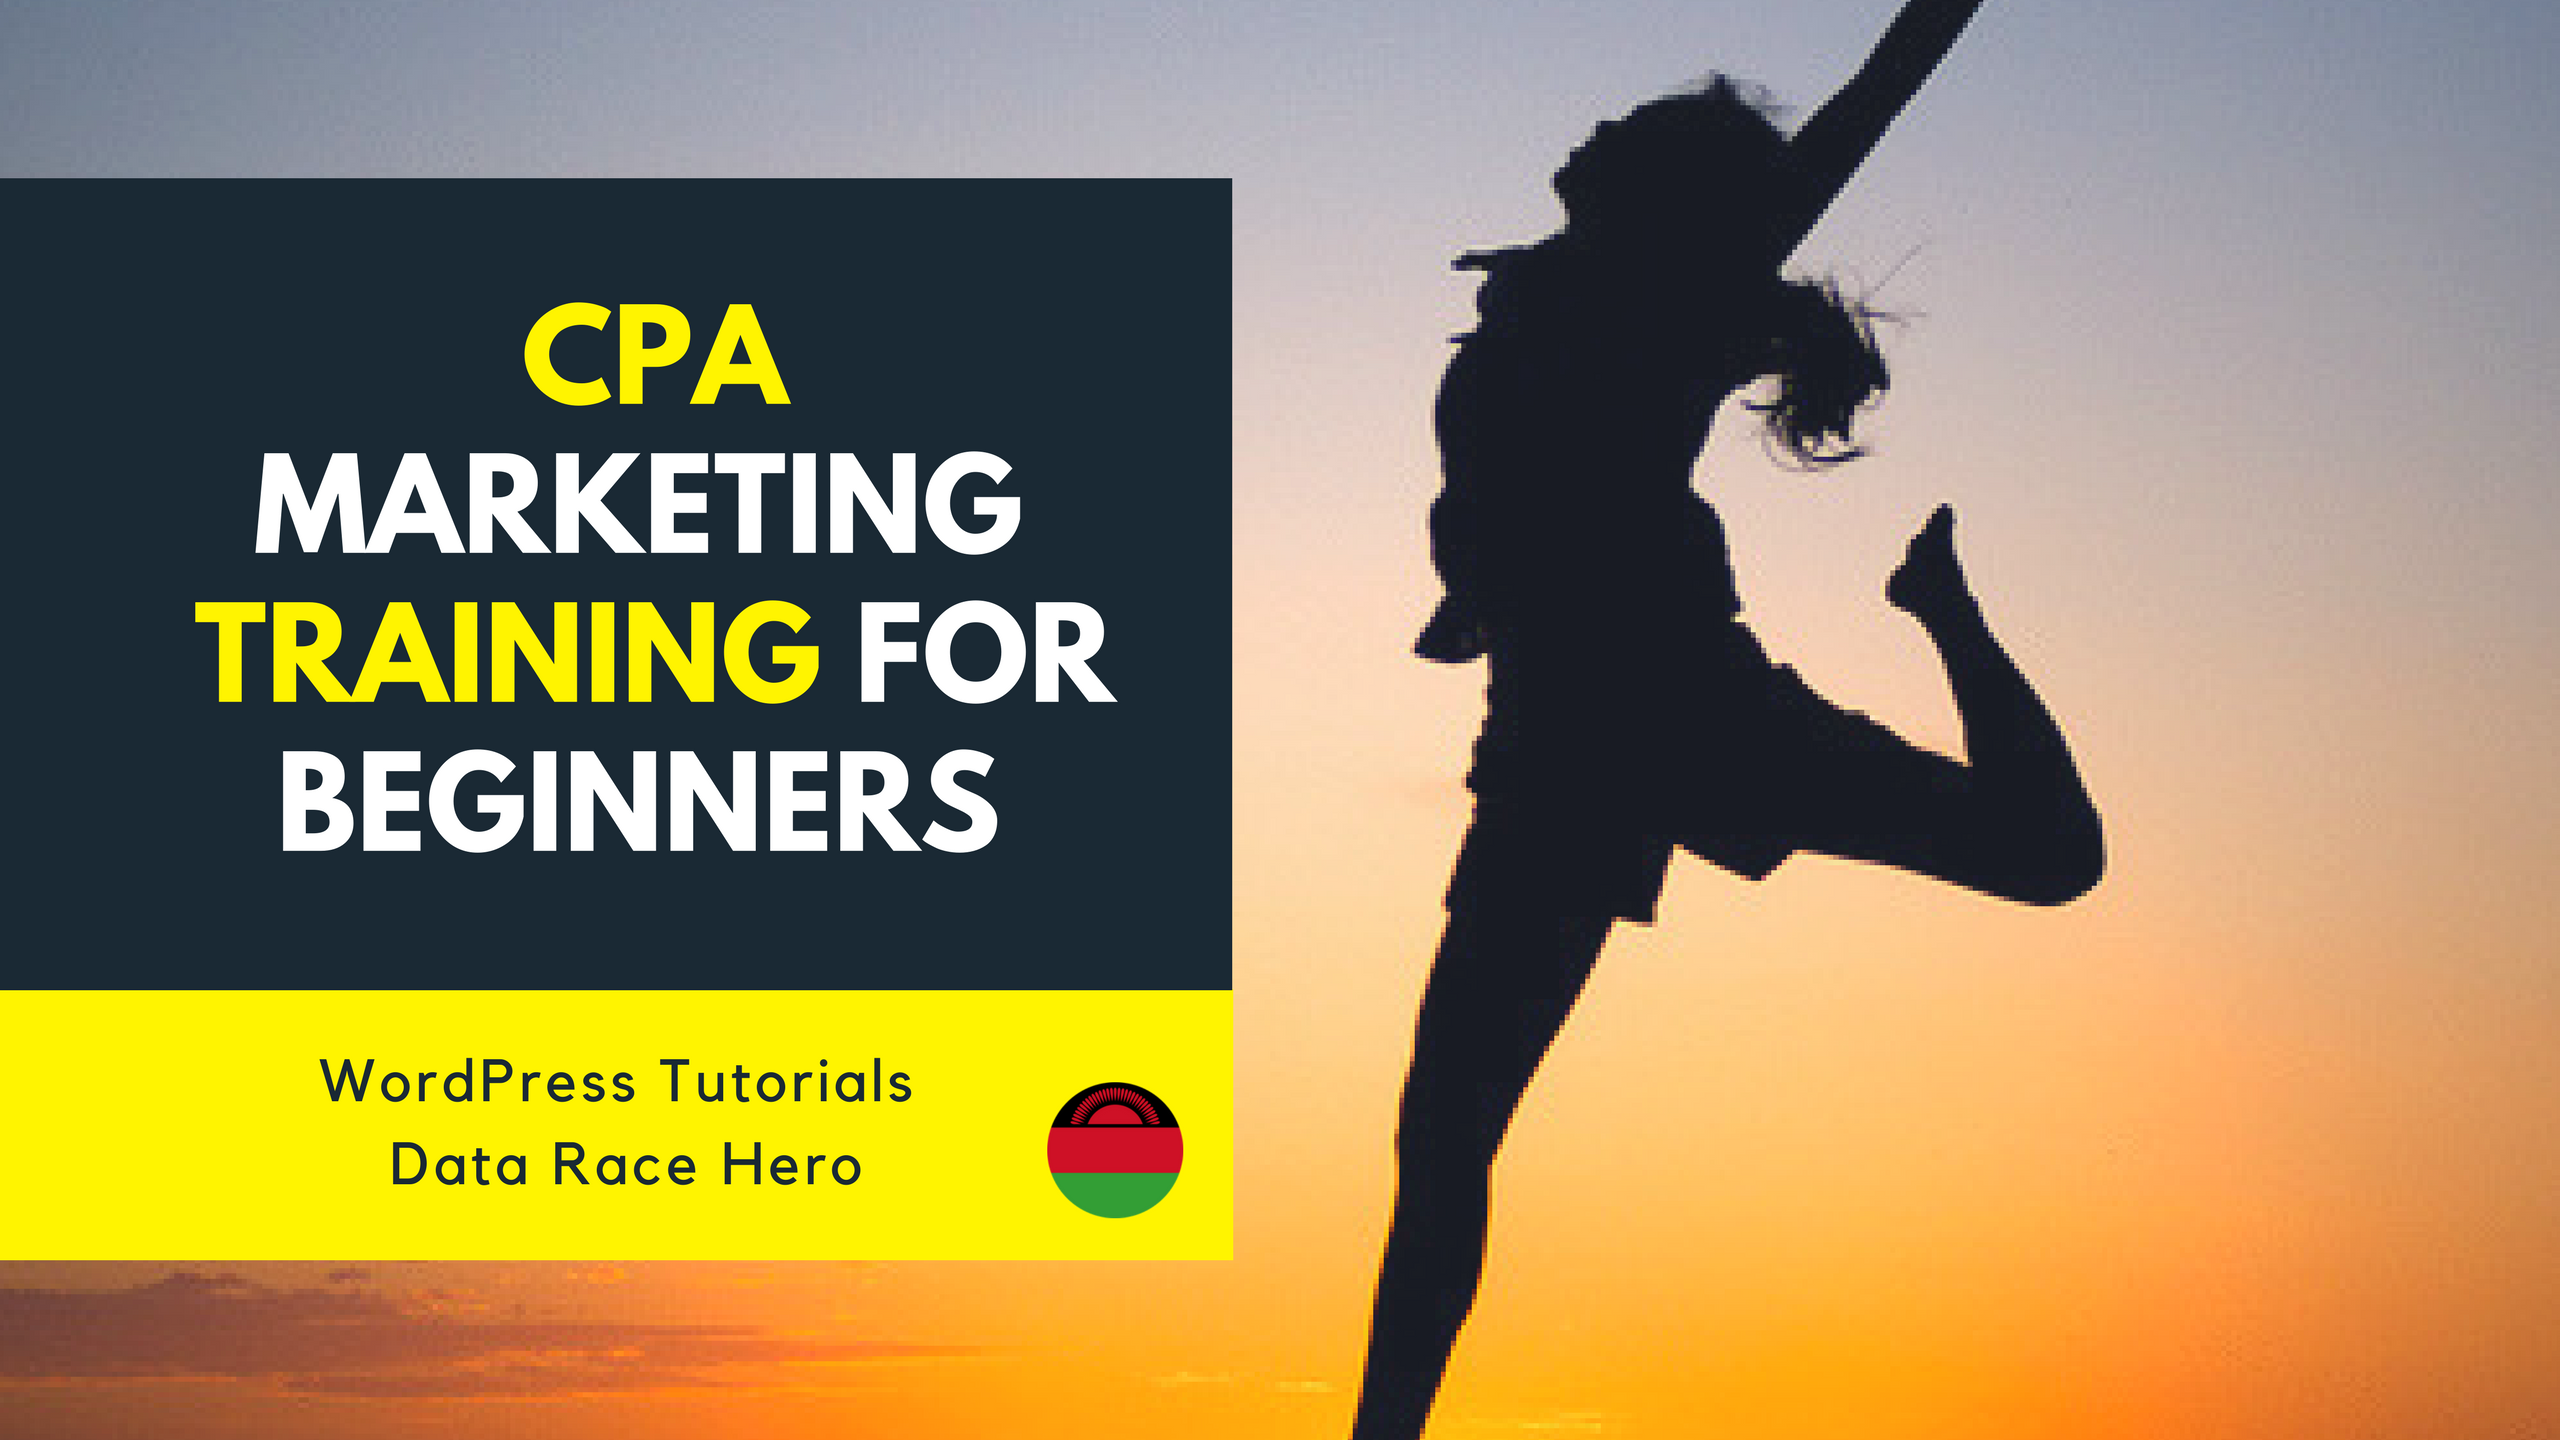 CPA marketing